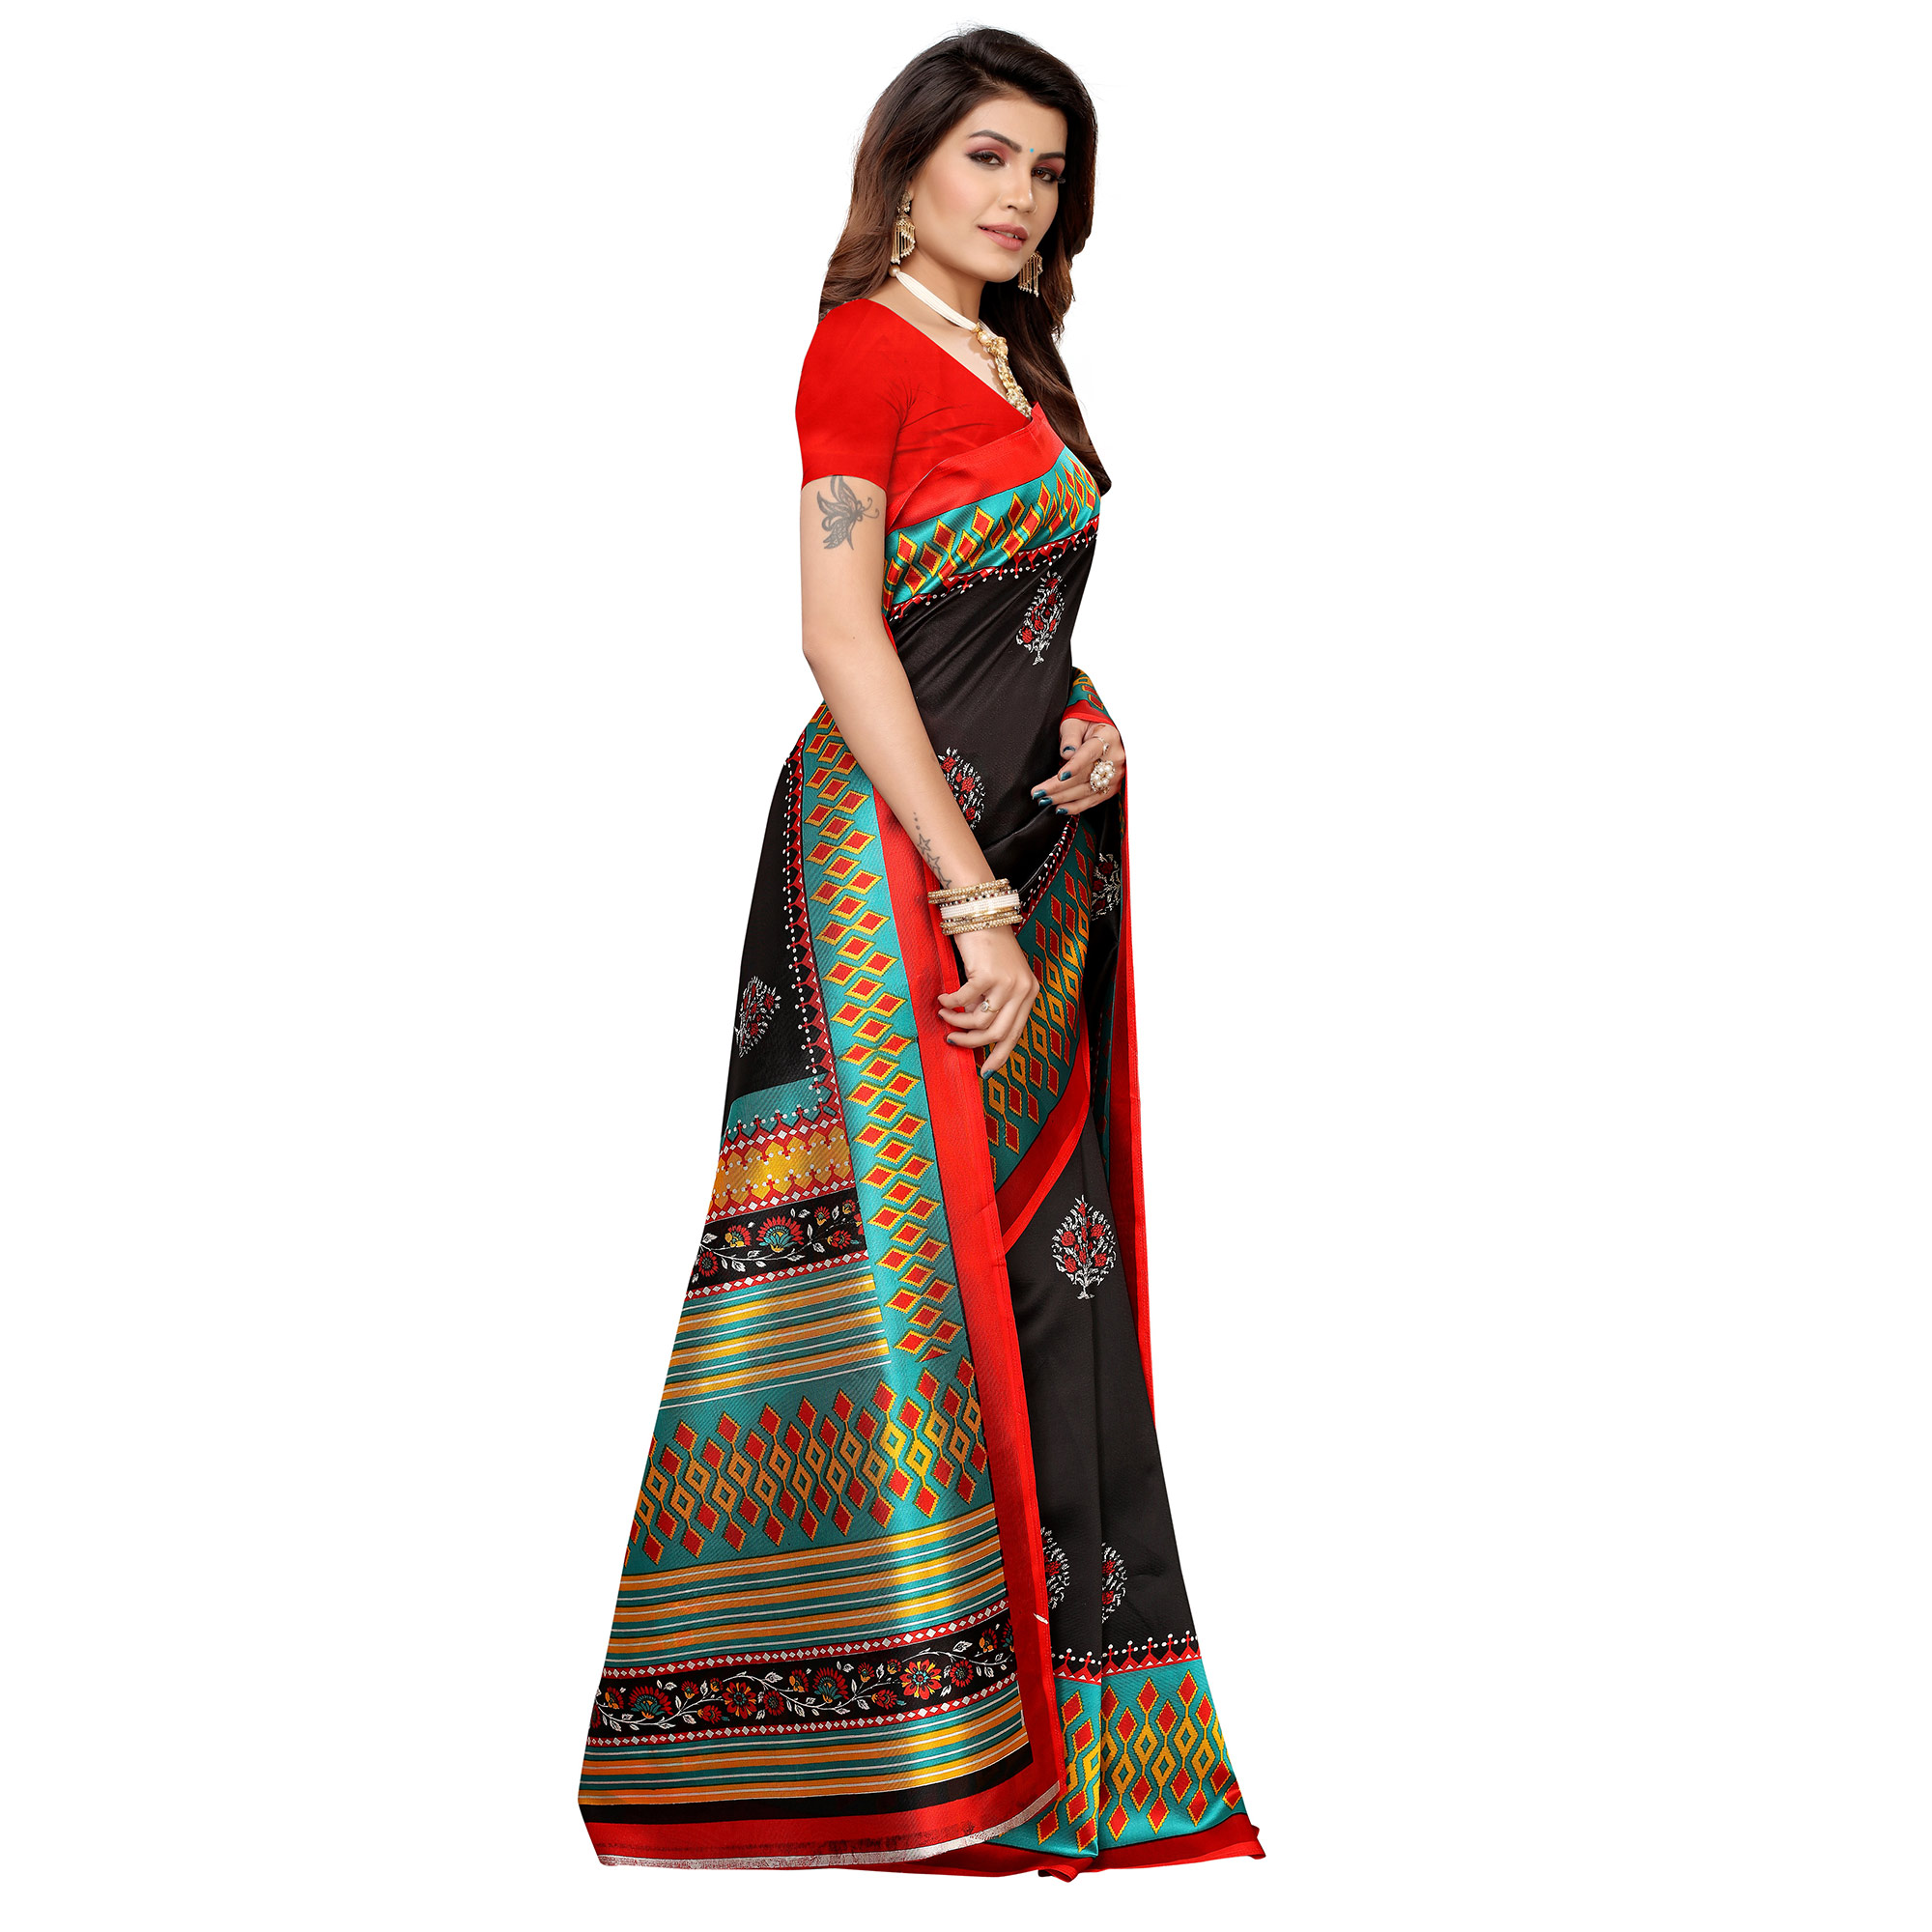 Marvellous Black Colored Casual Printed Mysore Silk Saree